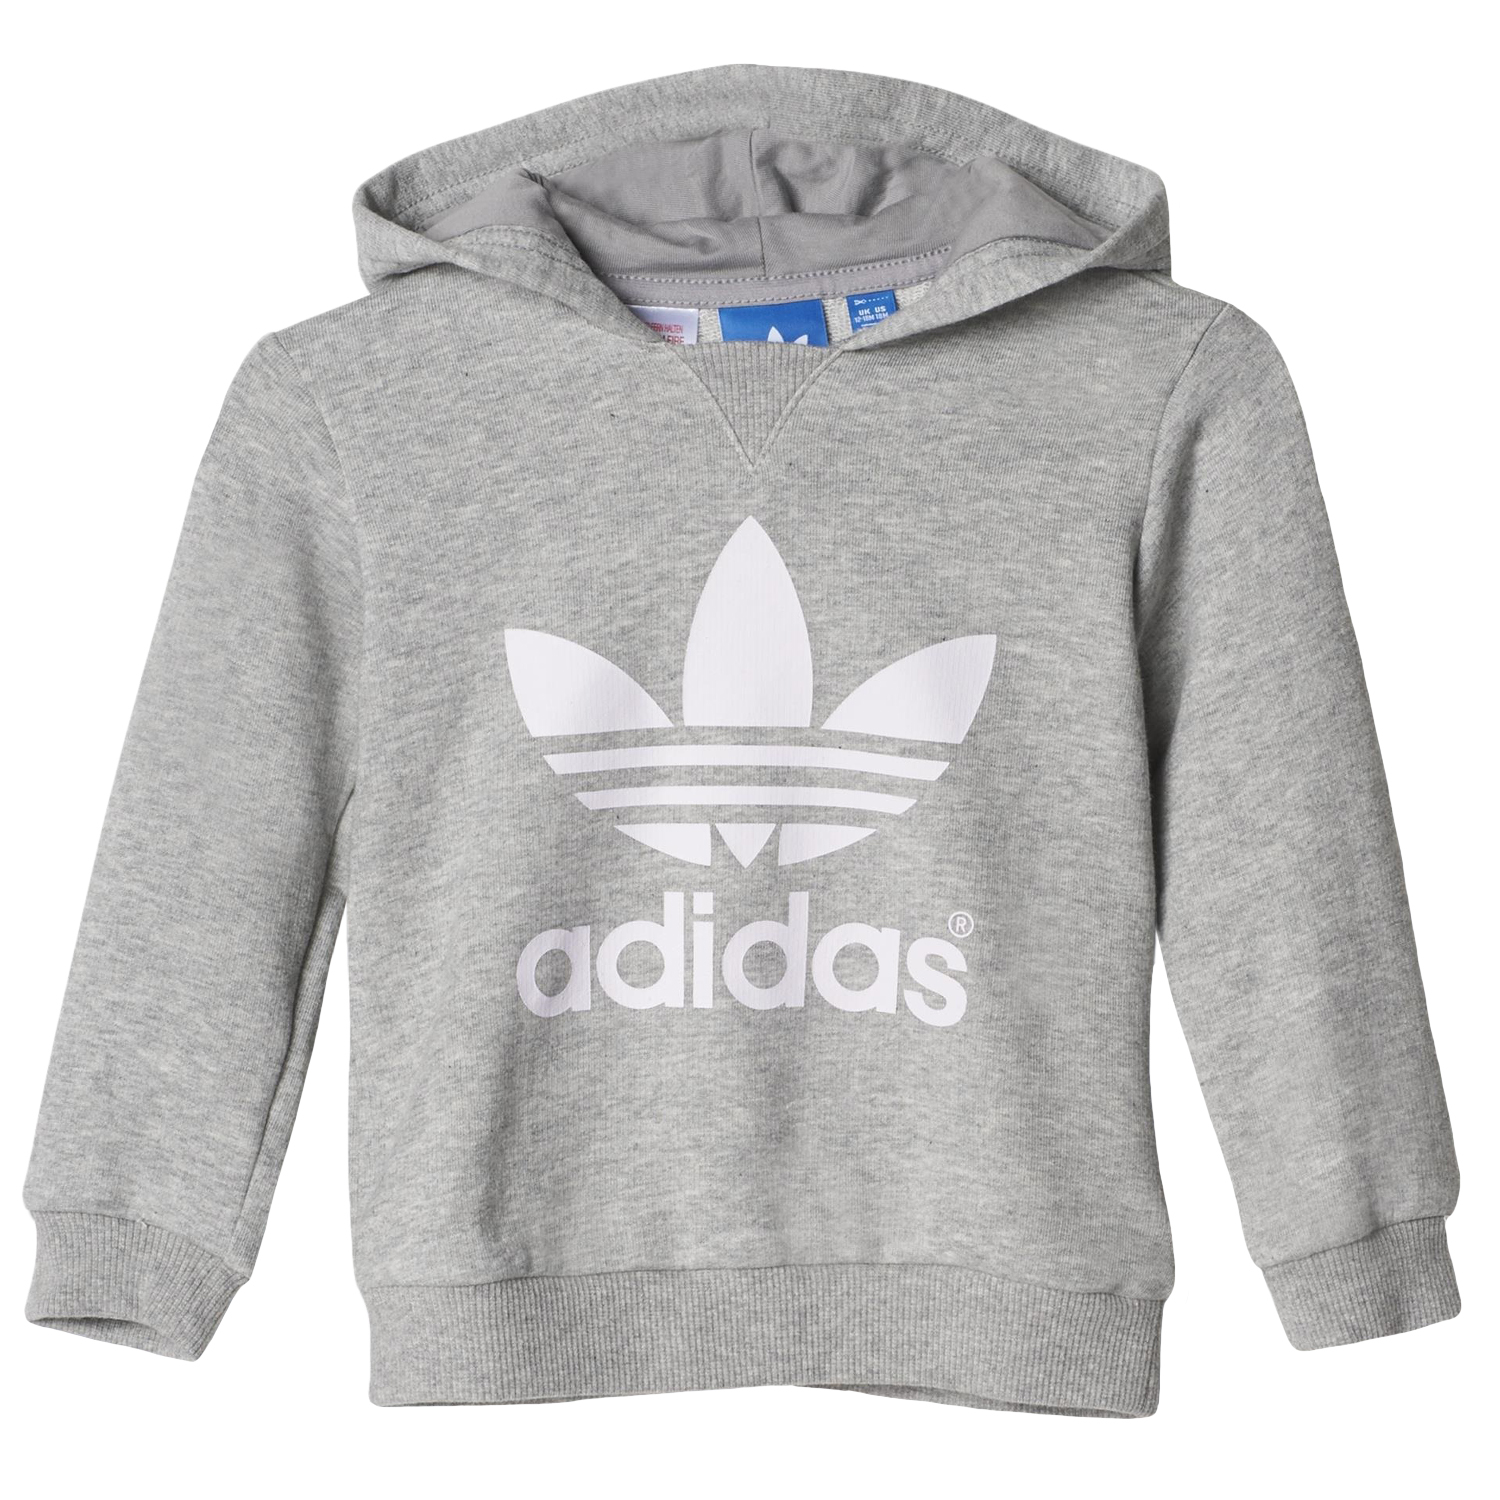 Buy cheap adidas sweater kids >a off57% discountdiscounts